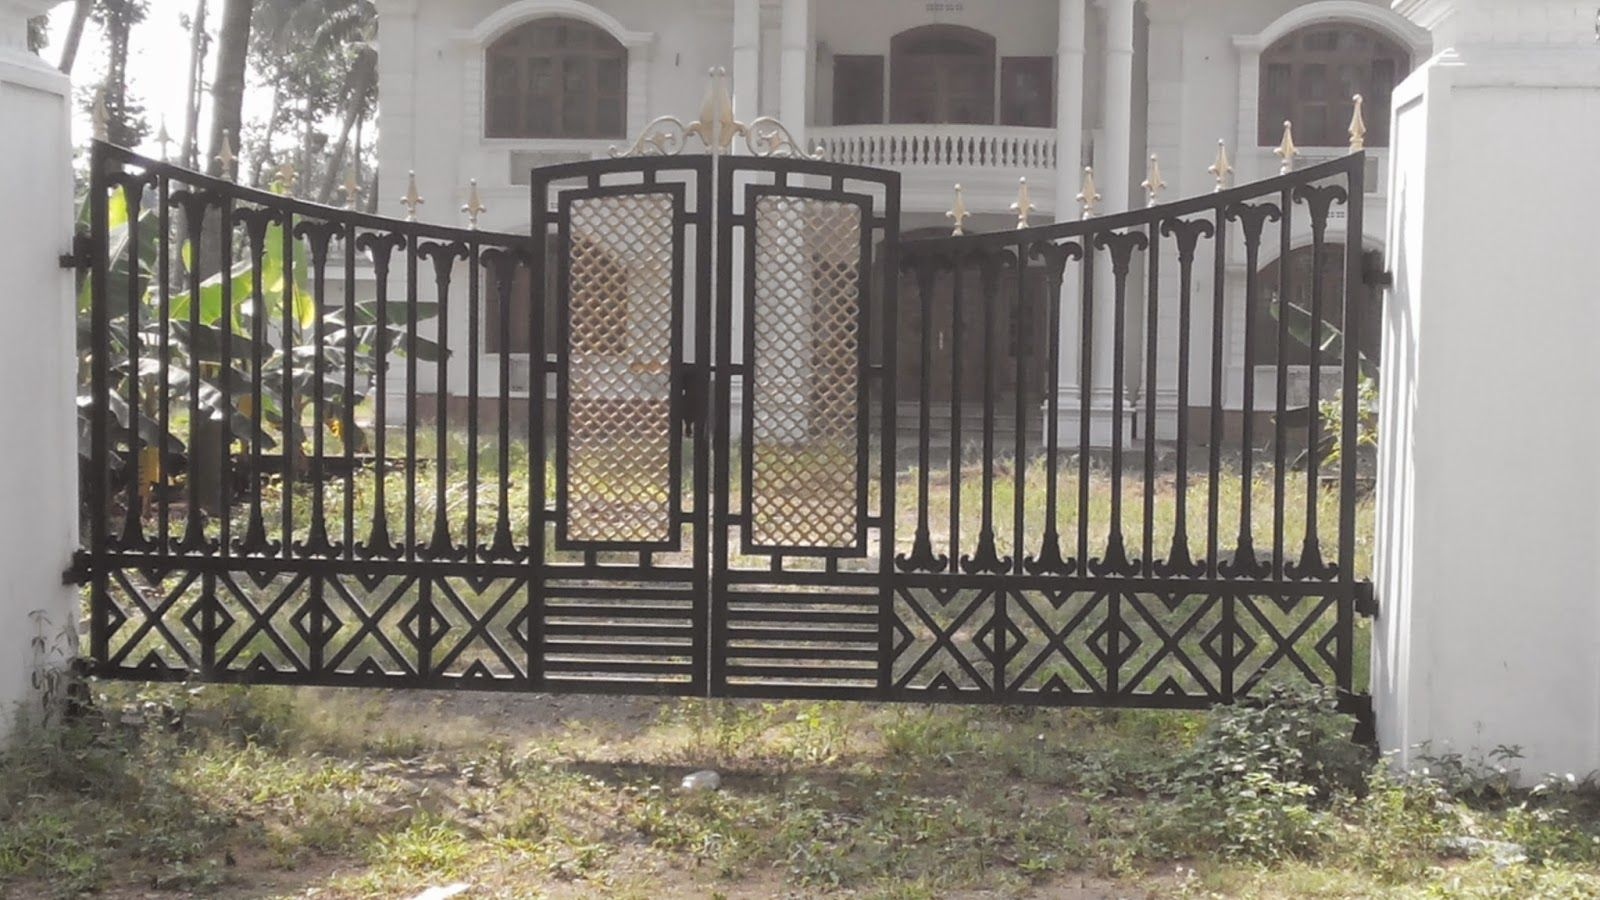 Resultado de imagen para different styles of gates | Pager rumah ... for Front Gate Designs For Indian Homes  75tgx